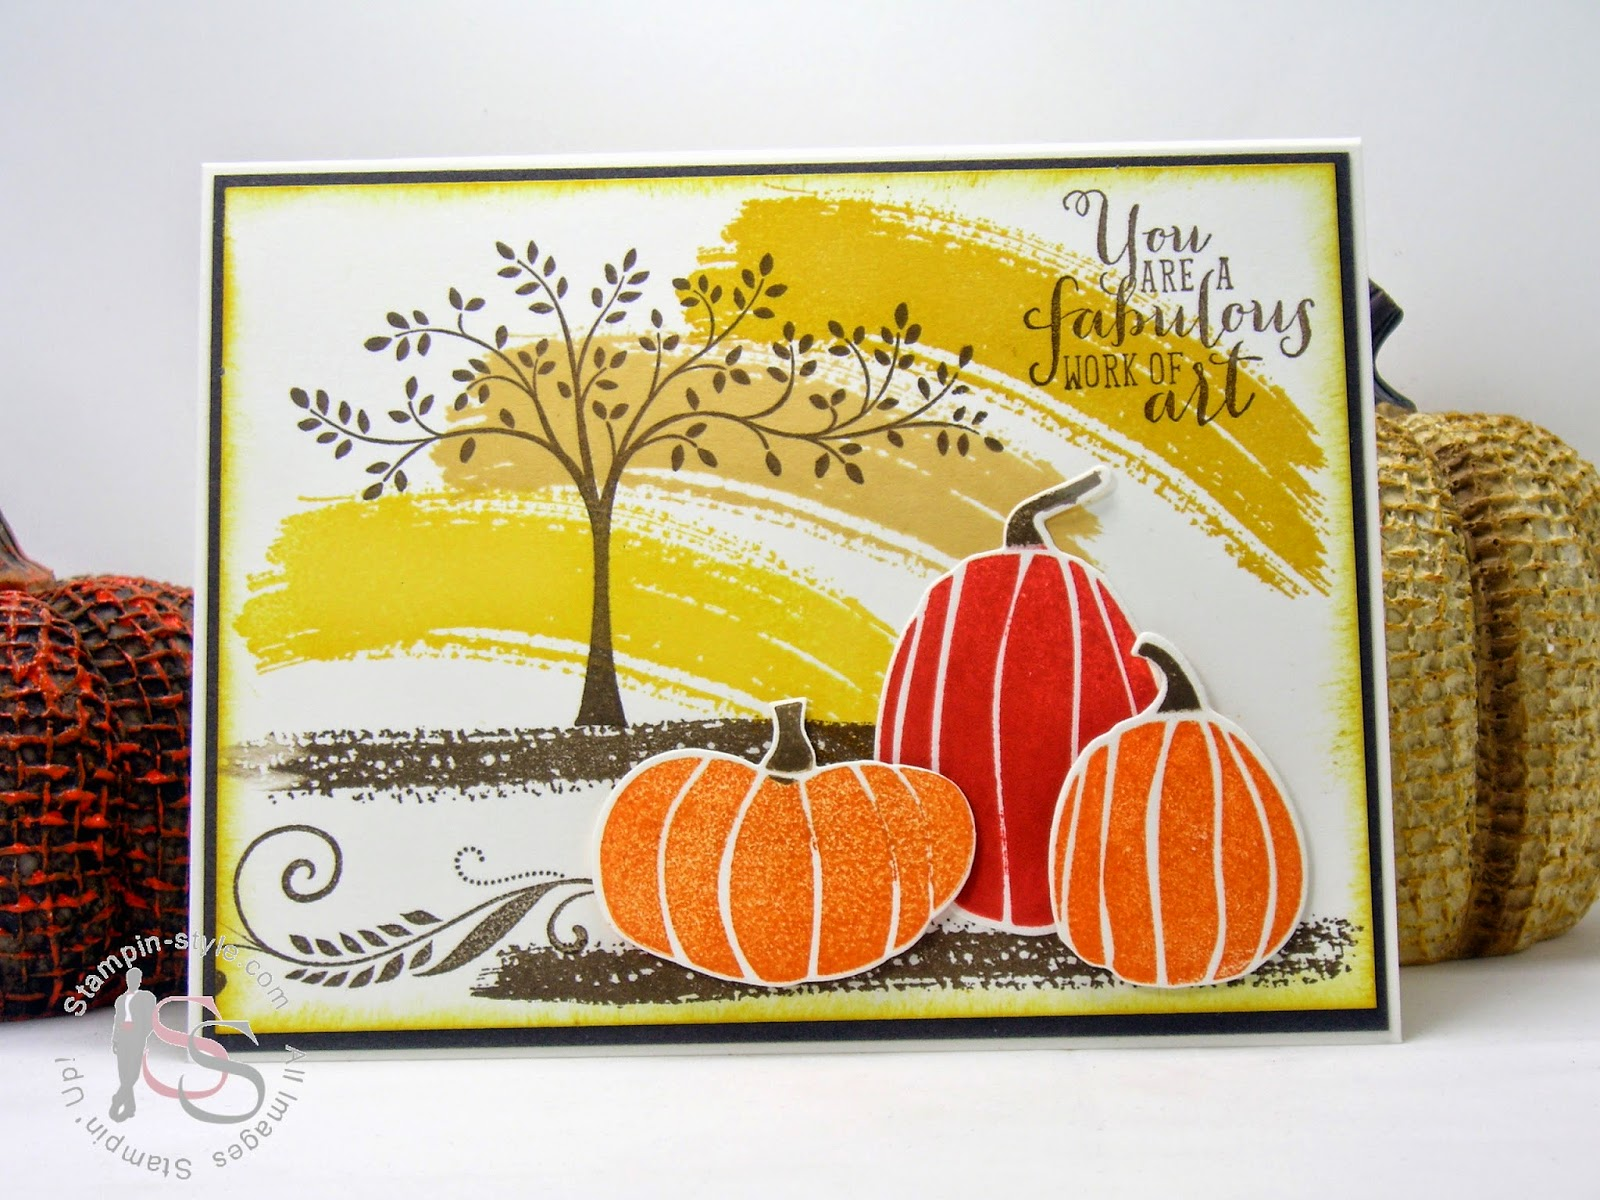 http://stampin-style.typepad.com/stampin-style/2014/09/pp212-happy-fall-yall.html